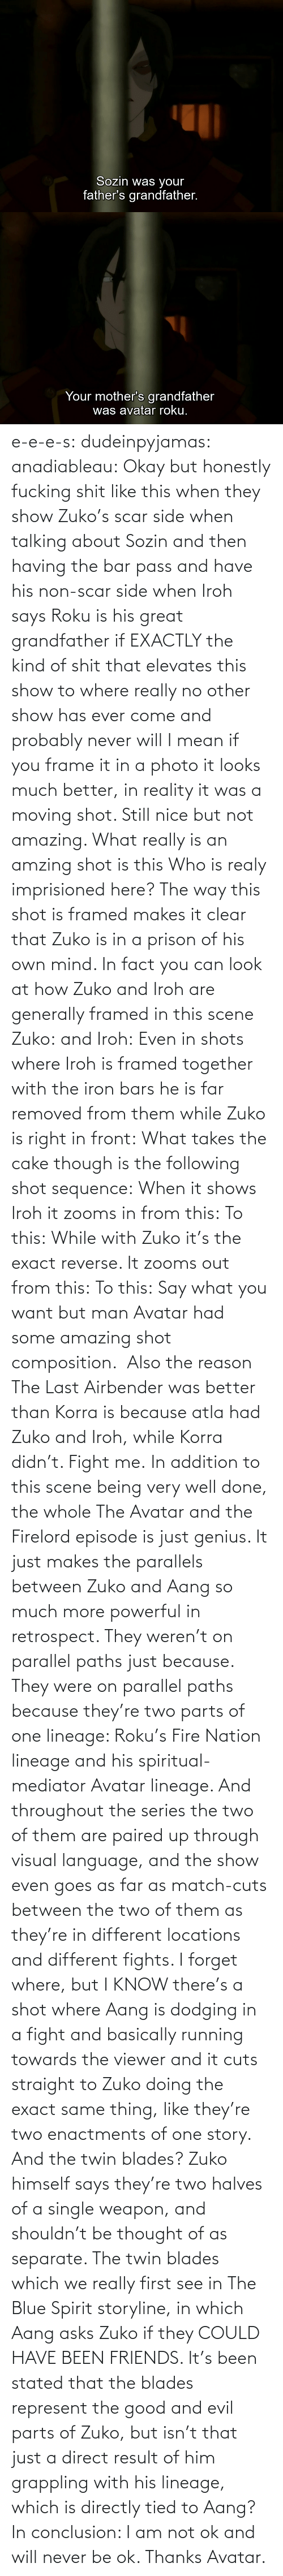 Takes: e-e-e-s: dudeinpyjamas:   anadiableau: Okay but honestly fucking shit like this when they show Zuko's scar side when talking about Sozin and then having the bar pass and have his non-scar side when Iroh says Roku is his great grandfather if EXACTLY the kind of shit that elevates this show to where really no other show has ever come and probably never will I mean if you frame it in a photo it looks much better, in reality it was a moving shot. Still nice but not amazing. What really is an amzing shot is this Who is realy imprisioned here? The way this shot is framed makes it clear that Zuko is in a prison of his own mind. In fact you can look at how Zuko and Iroh are generally framed in this scene Zuko: and Iroh: Even in shots where Iroh is framed together with the iron bars he is far removed from them while Zuko is right in front:  What takes the cake though is the following shot sequence: When it shows Iroh it zooms in from this: To this: While with Zuko it's the exact reverse. It zooms out from this: To this: Say what you want but man Avatar had some amazing shot composition.   Also the reason The Last Airbender was better than Korra is because atla had Zuko and Iroh, while Korra didn't. Fight me.    In addition to this scene being very well done, the whole The Avatar and the Firelord episode is just genius.  It just makes the parallels between Zuko and Aang so much more powerful in retrospect.  They weren't on parallel paths just because.  They were on parallel paths because they're two parts of one lineage: Roku's Fire Nation lineage and his spiritual-mediator Avatar lineage.  And throughout the series the two of them are paired up through visual language, and the show even goes as far as match-cuts between the two of them as they're in different locations and different fights.  I forget where, but I KNOW there's a shot where Aang is dodging in a fight and basically running towards the viewer and it cuts straight to Zuko doing the exact same thing, like they're two enactments of one story.   And the twin blades?  Zuko himself says they're two halves of a single weapon, and shouldn't be thought of as separate.  The twin blades which we really first see in The Blue Spirit storyline, in which Aang asks Zuko if they COULD HAVE BEEN FRIENDS.  It's been stated that the blades represent the good and evil parts of Zuko, but isn't that just a direct result of him grappling with his lineage, which is directly tied to Aang? In conclusion: I am not ok and will never be ok.  Thanks Avatar.